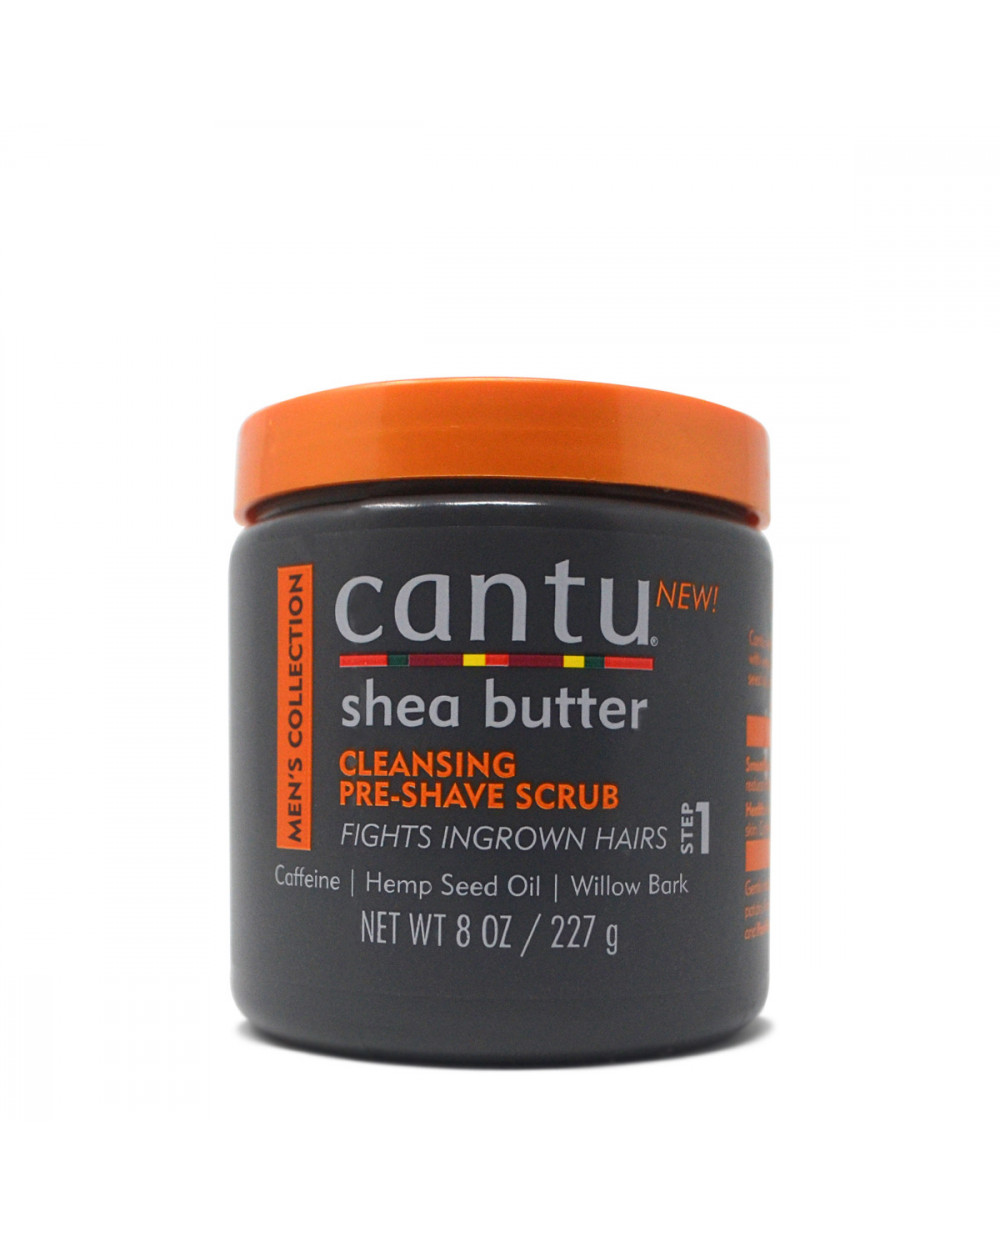 Cantu Men's Collection Cleansing Pre-Shave Scrub 227g